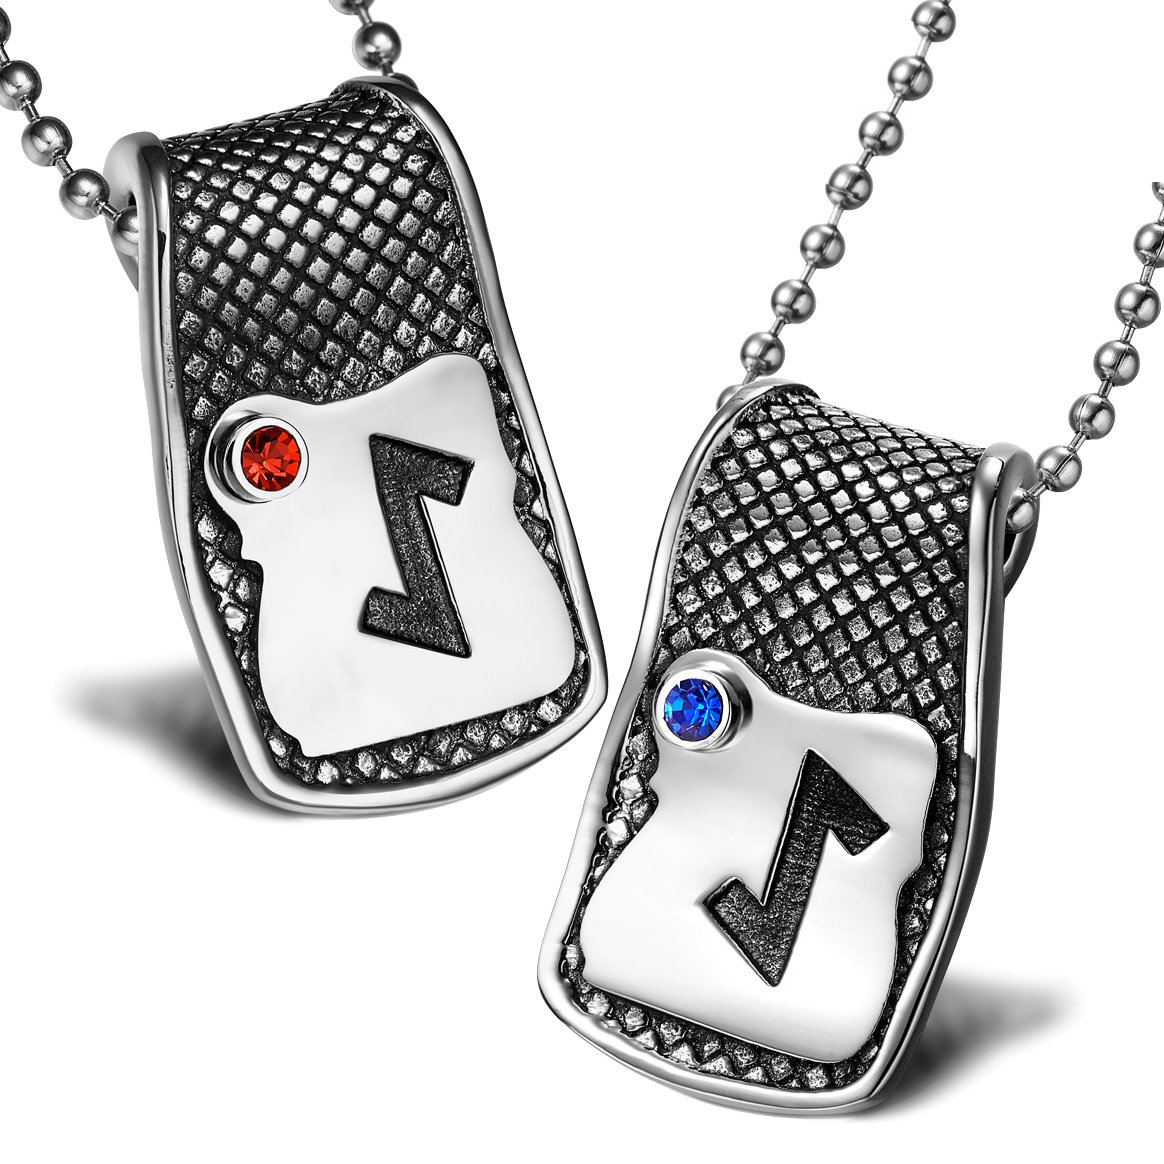 Unique Rune Eihwaz Defense Powers Love Couples or Best Friends Amulets Set Red Blue Crystals Necklaces